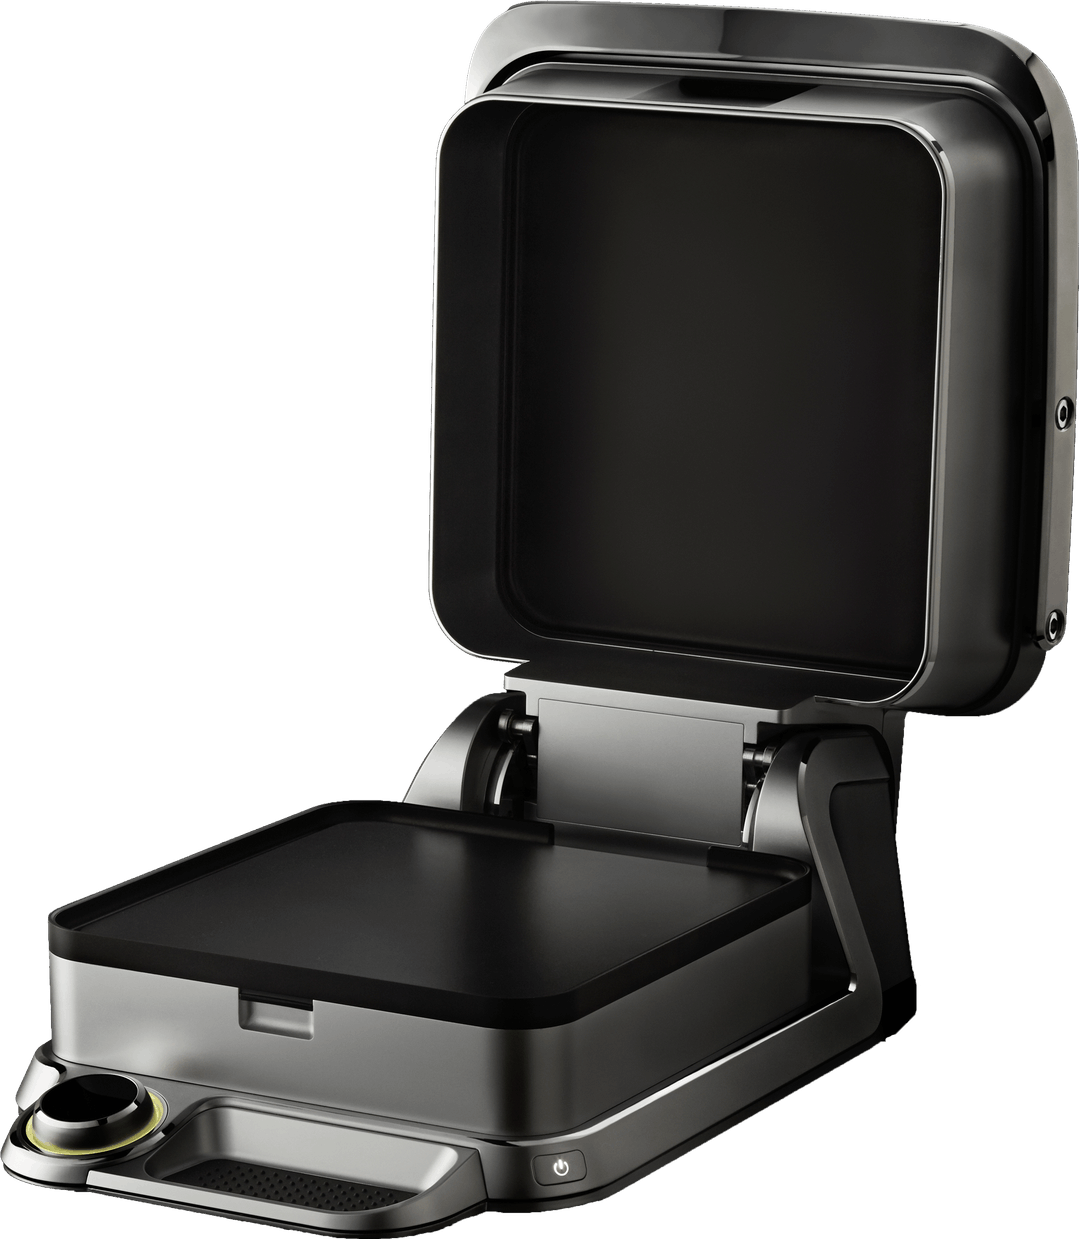 Cinder Grill Sous Vide vs Cinder Sous Vide Grill Indoor grill countertop grill